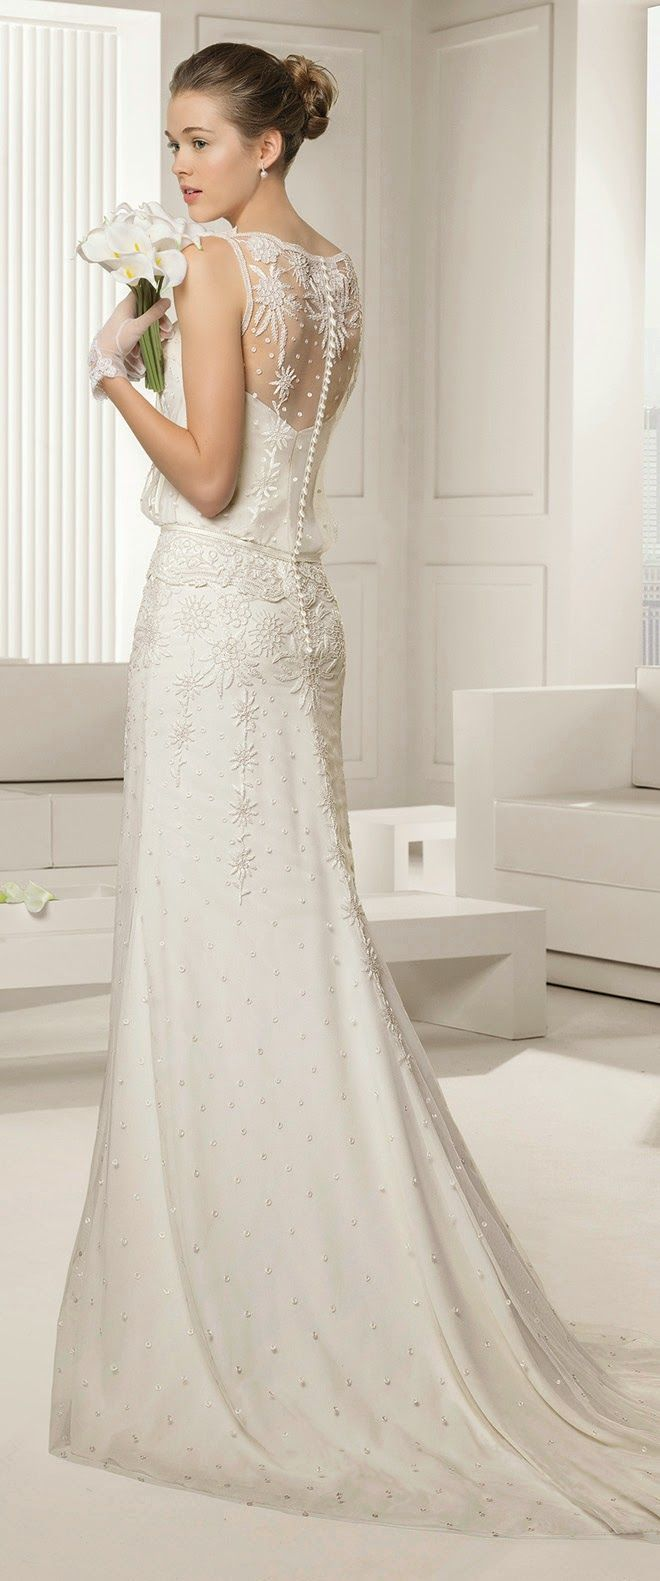 126 best Brautkleider - Inspirationen images on Pinterest | Wedding ...